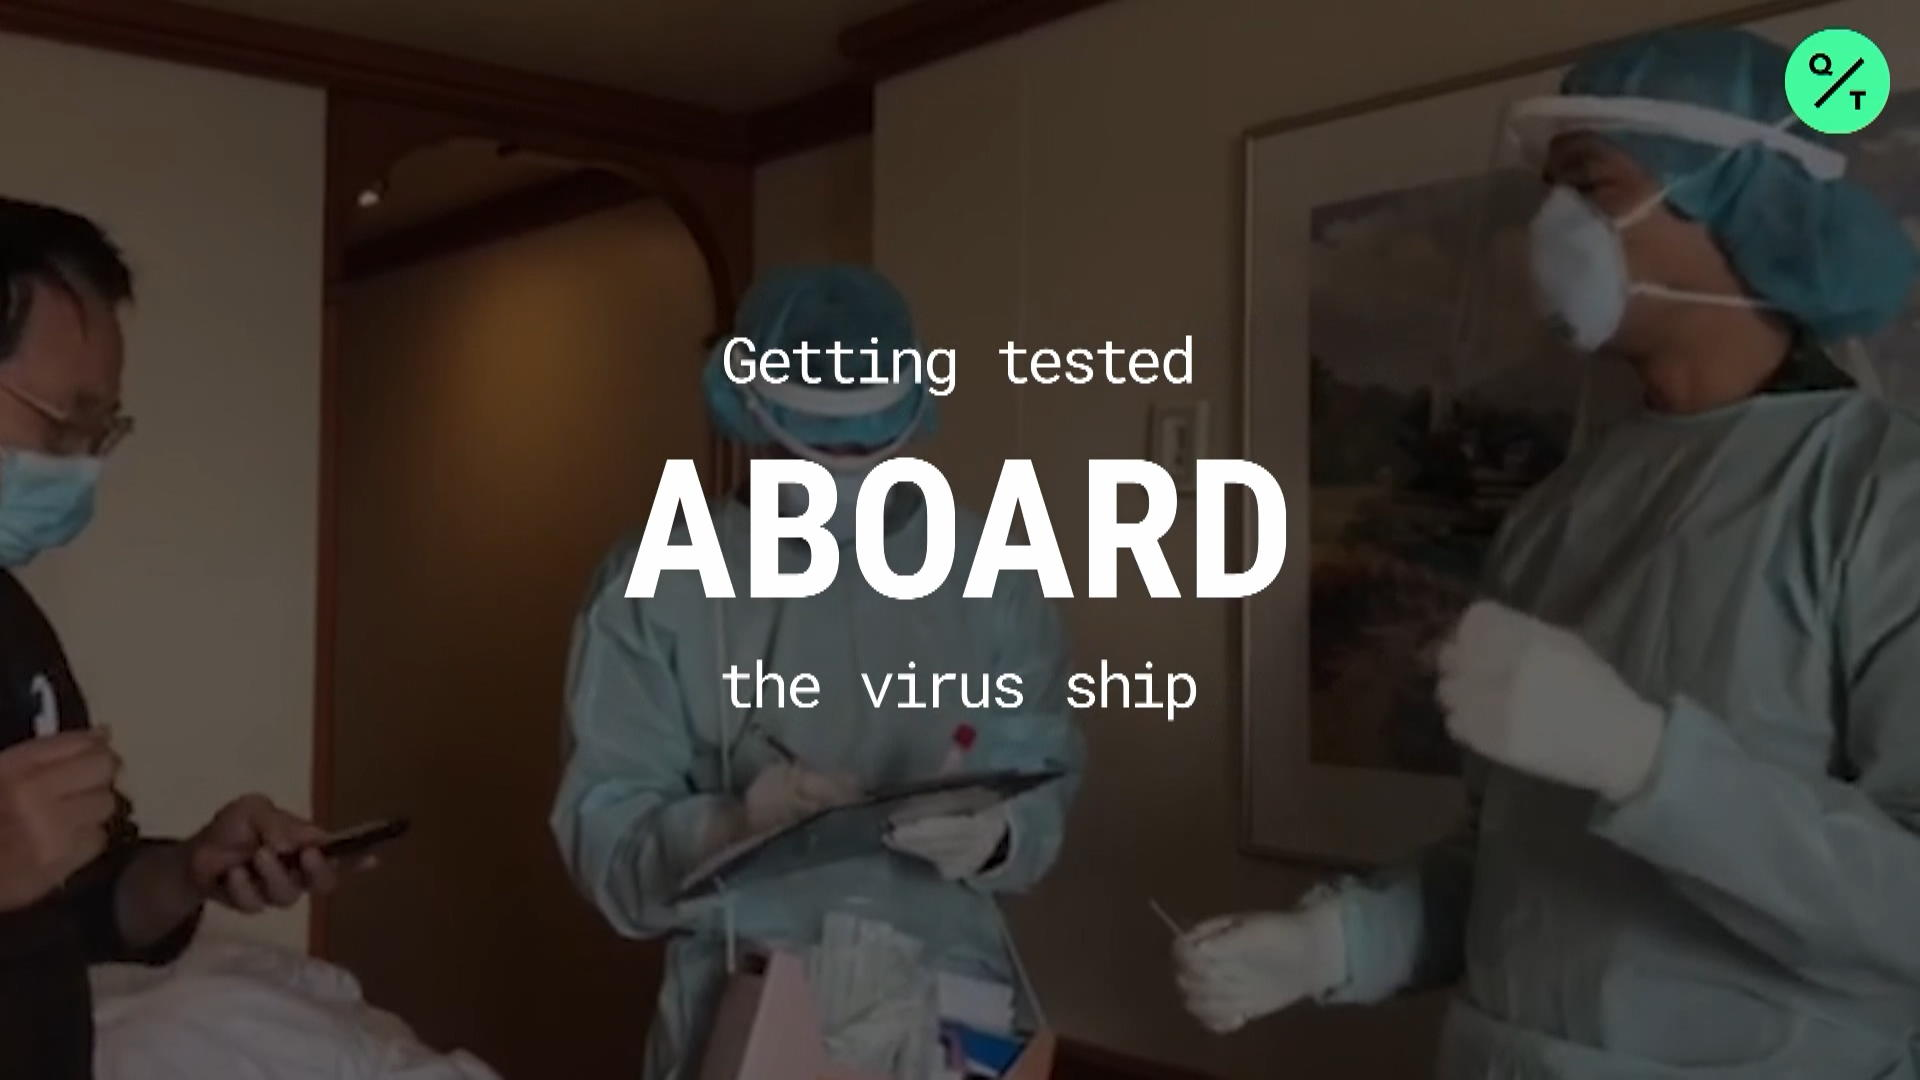 Getting Tested aboard the Virus Ship